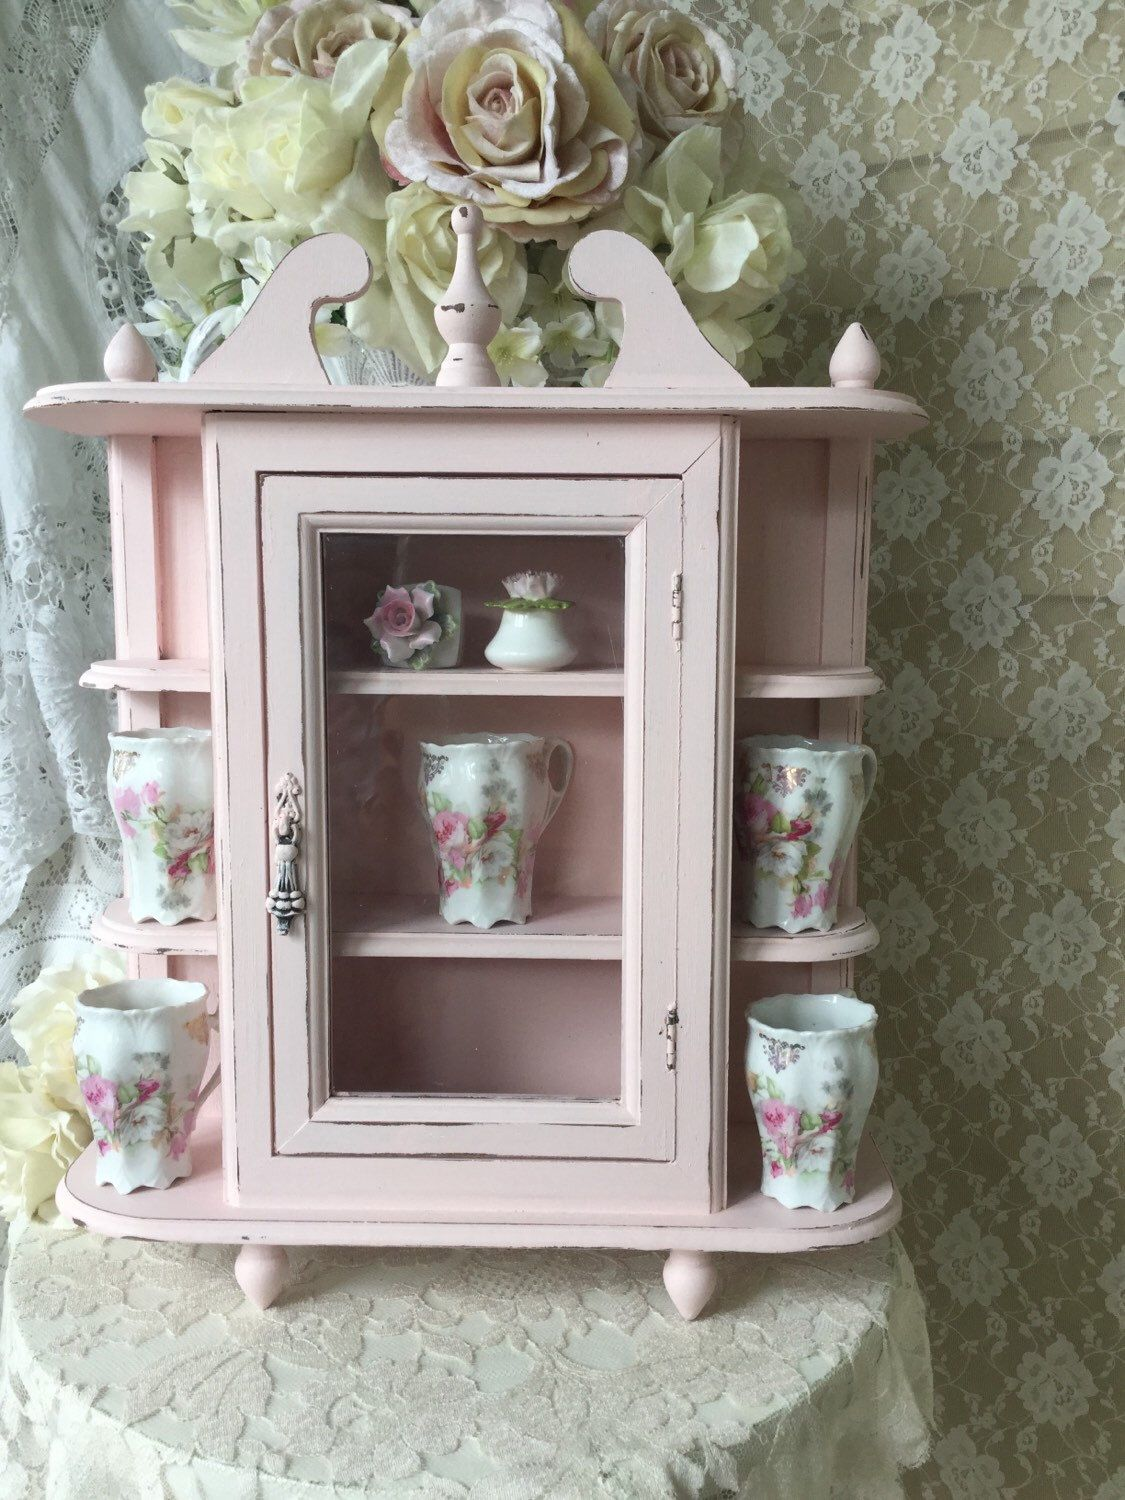 Shabby Pink Curio Cabinet With Glass Door Vintage Hanging Curio Cabinet Shelf Wall Cabinet Bathroom Ca Shabby Chic Room Shabby Chic Bathroom Shabby Chic Decor